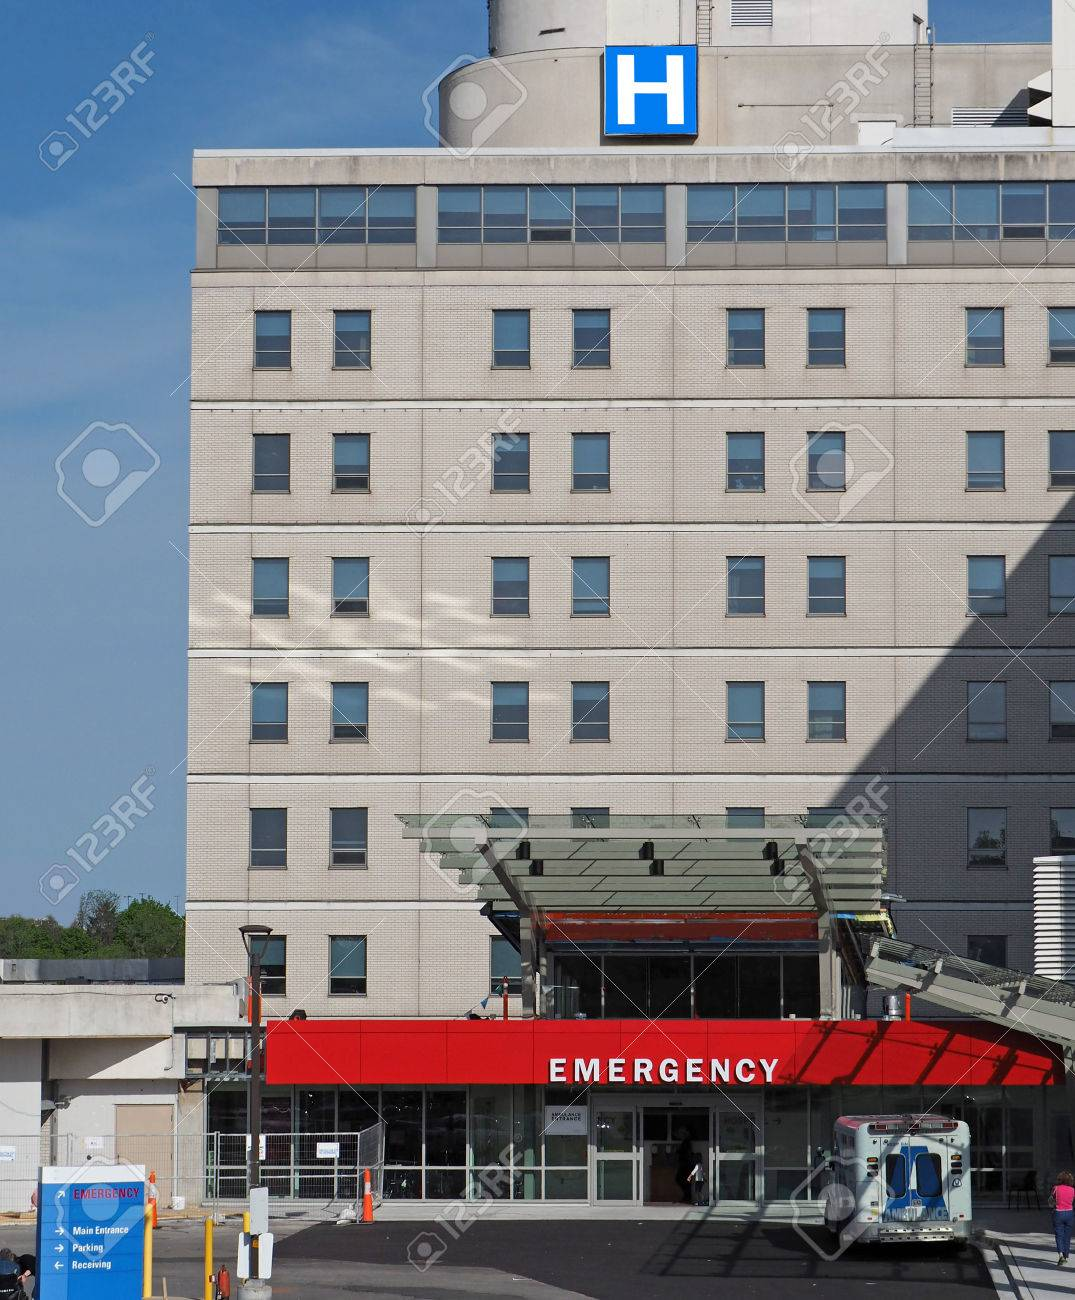 Hospital emergency entrance stock photo picture and royalty free hospital emergency entrance stock photo 59472250 altavistaventures Gallery